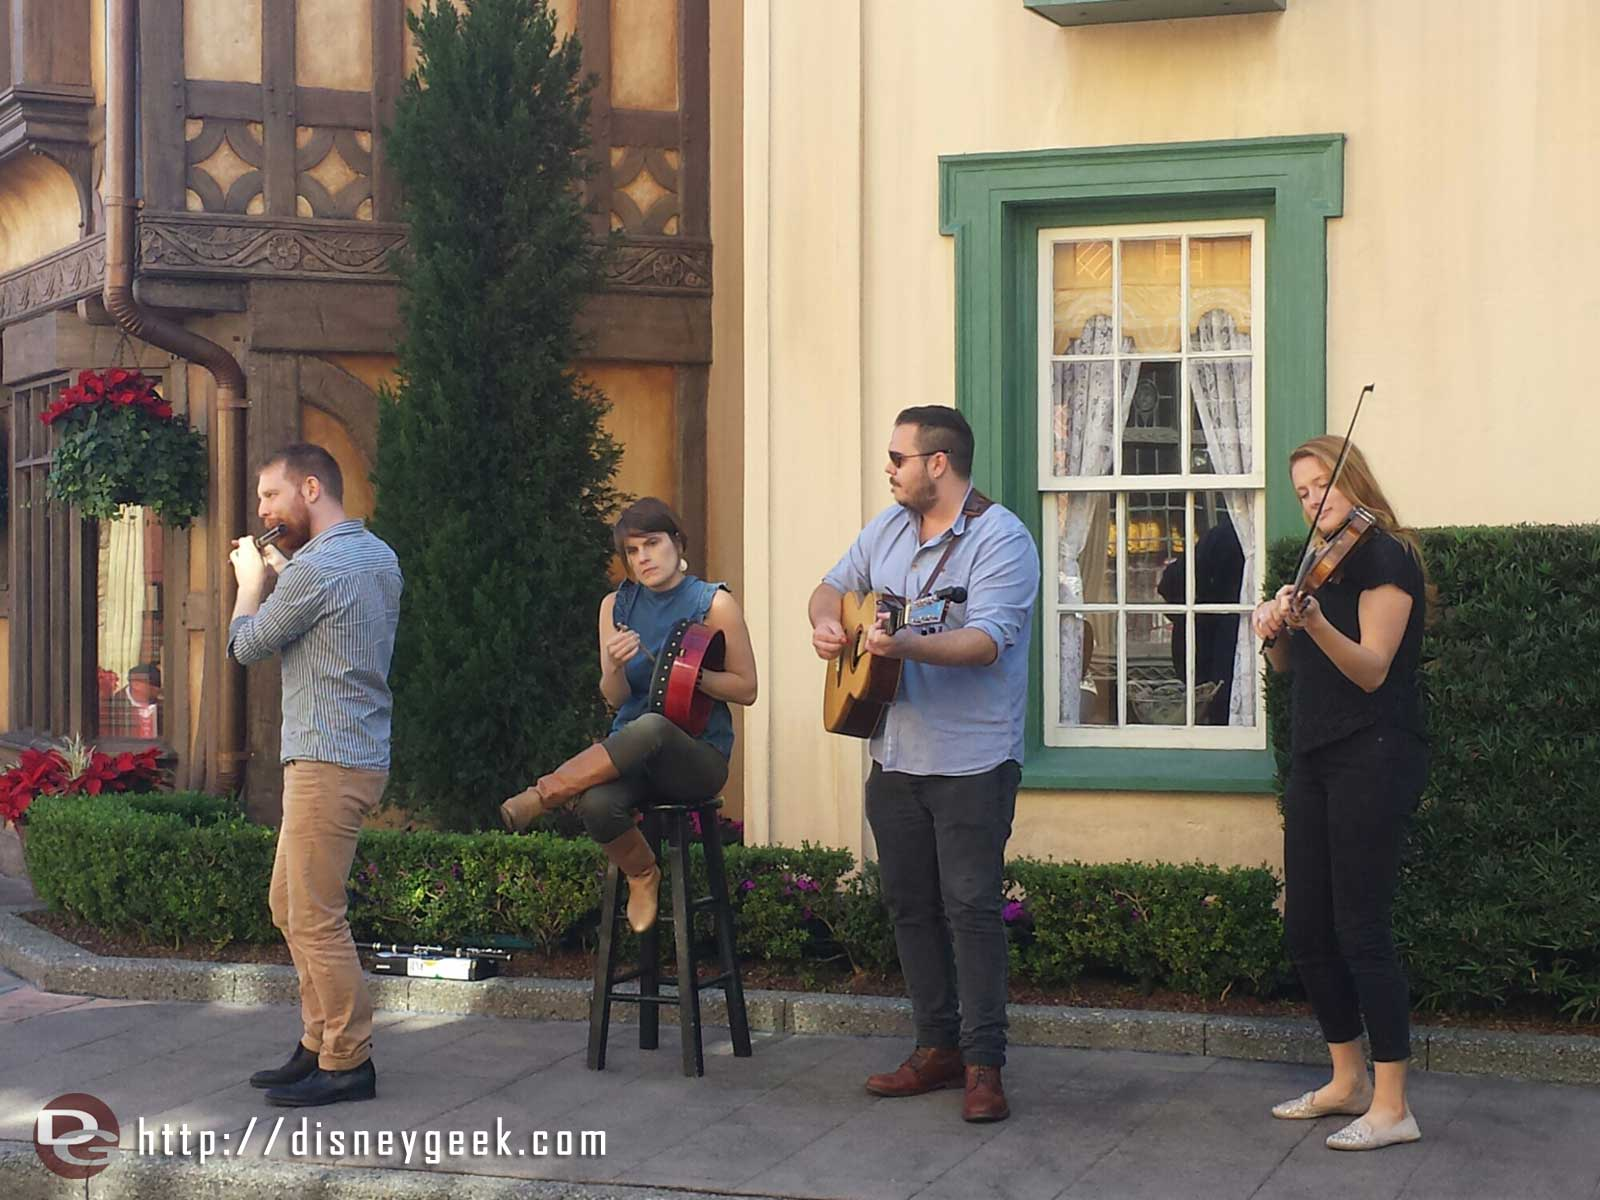 Paul McKenna Band performing in the United Kingdom #Epcot